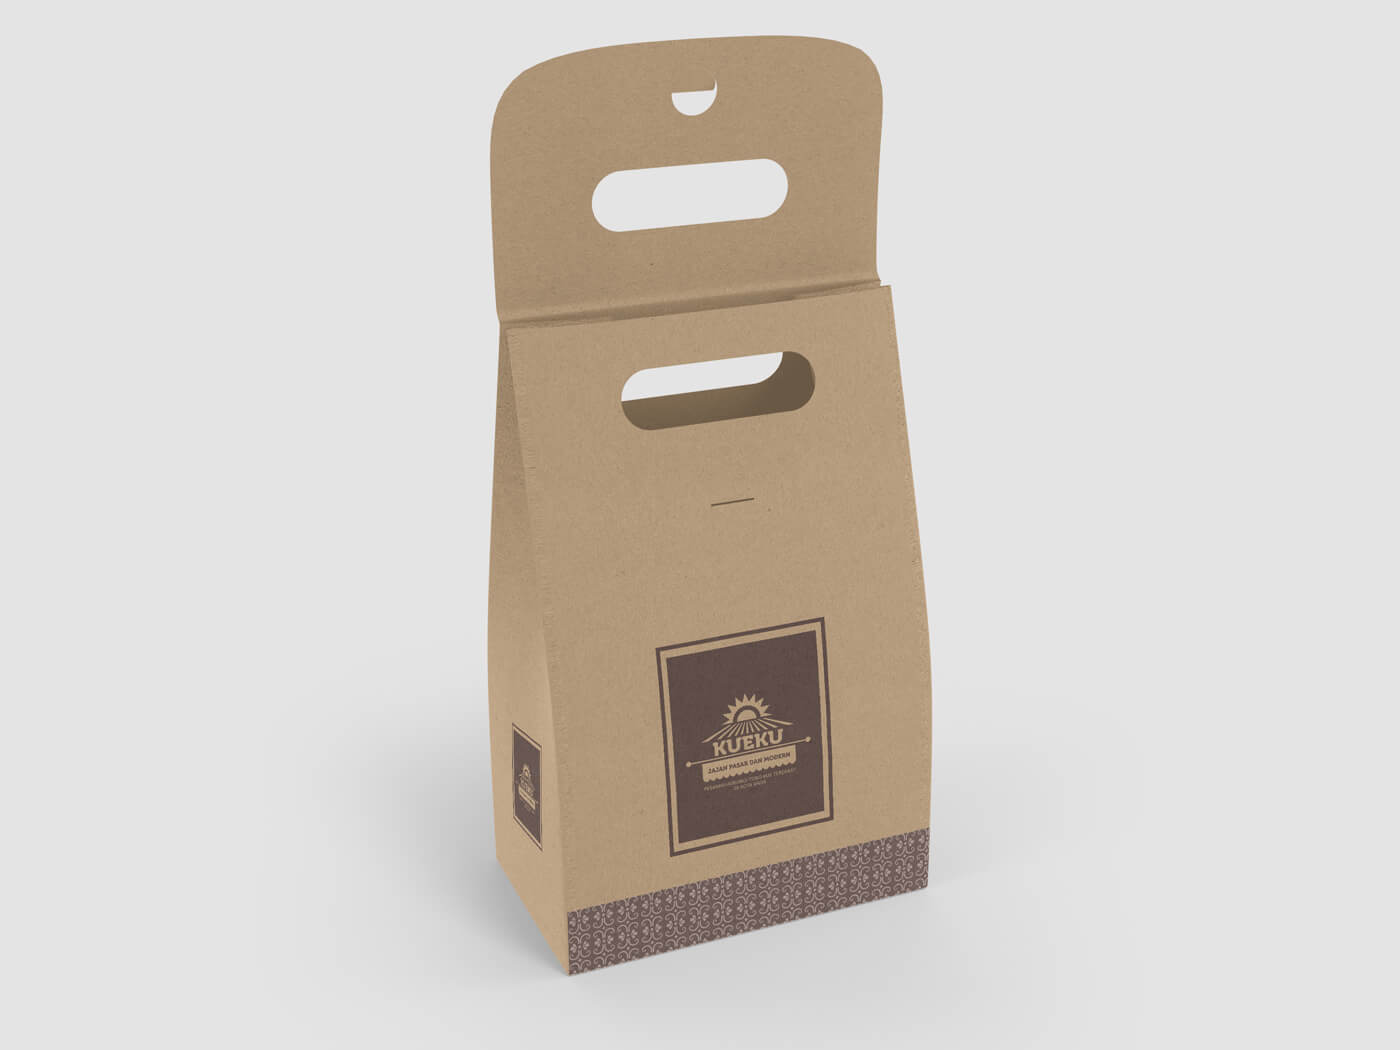 Cake and Cookie Kraft paper Bag Mockup 02